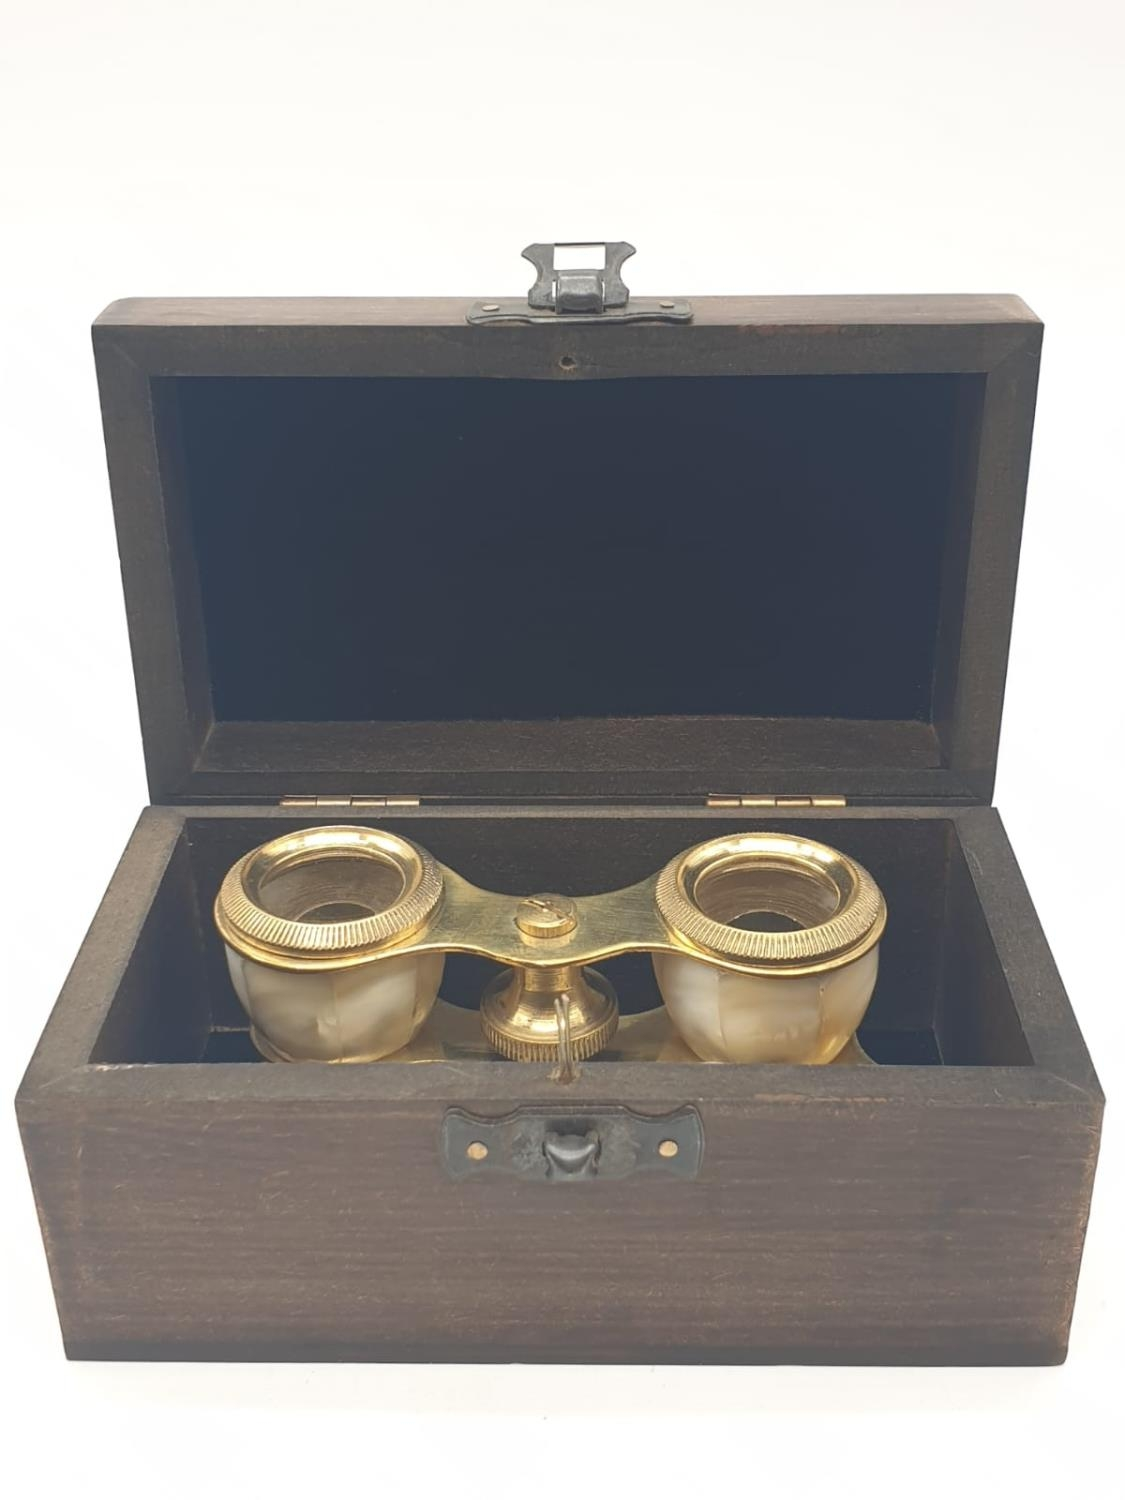 1920's Mother of Pearl & Brass opera glasses with folding handle, in wooden box. 13x7cm. - Image 8 of 9